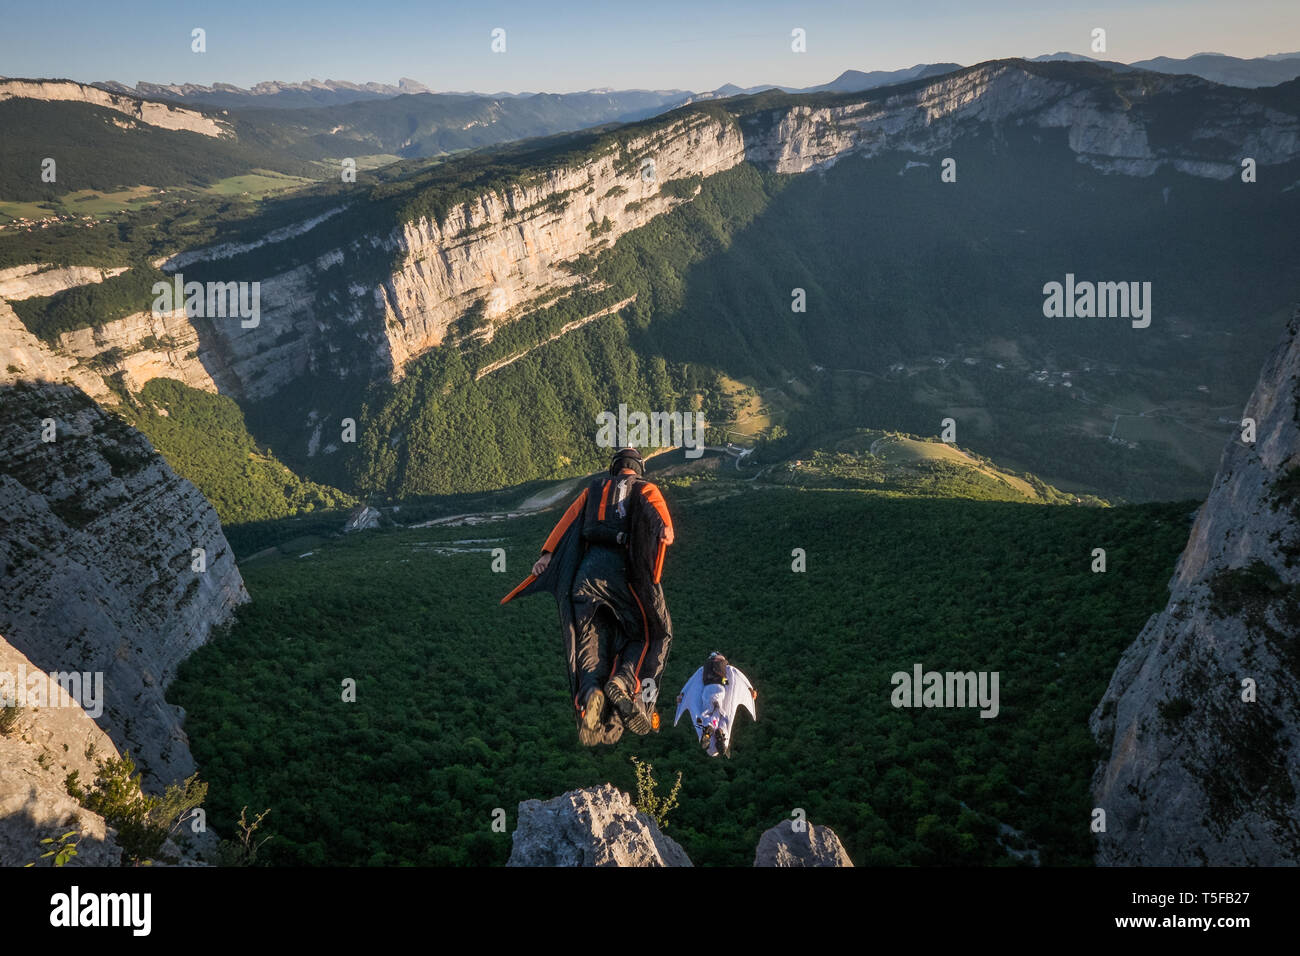 CHORANCHE, FRANCE - AUGUST 20: Two wingsuit jumpers jumping from a cliff in france, Auvergne-rhône-alpes, Choranche, France on August 20, 2015 in Choranche, France. (Photo by Fred Marie/Art in All of Us/Corbis via Getty Images) - Stock Image